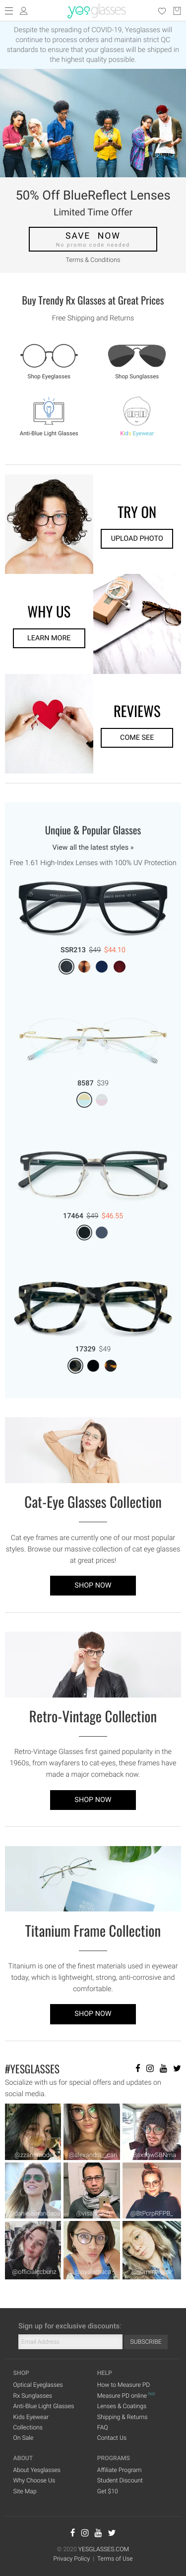 Yesglasses Coupon